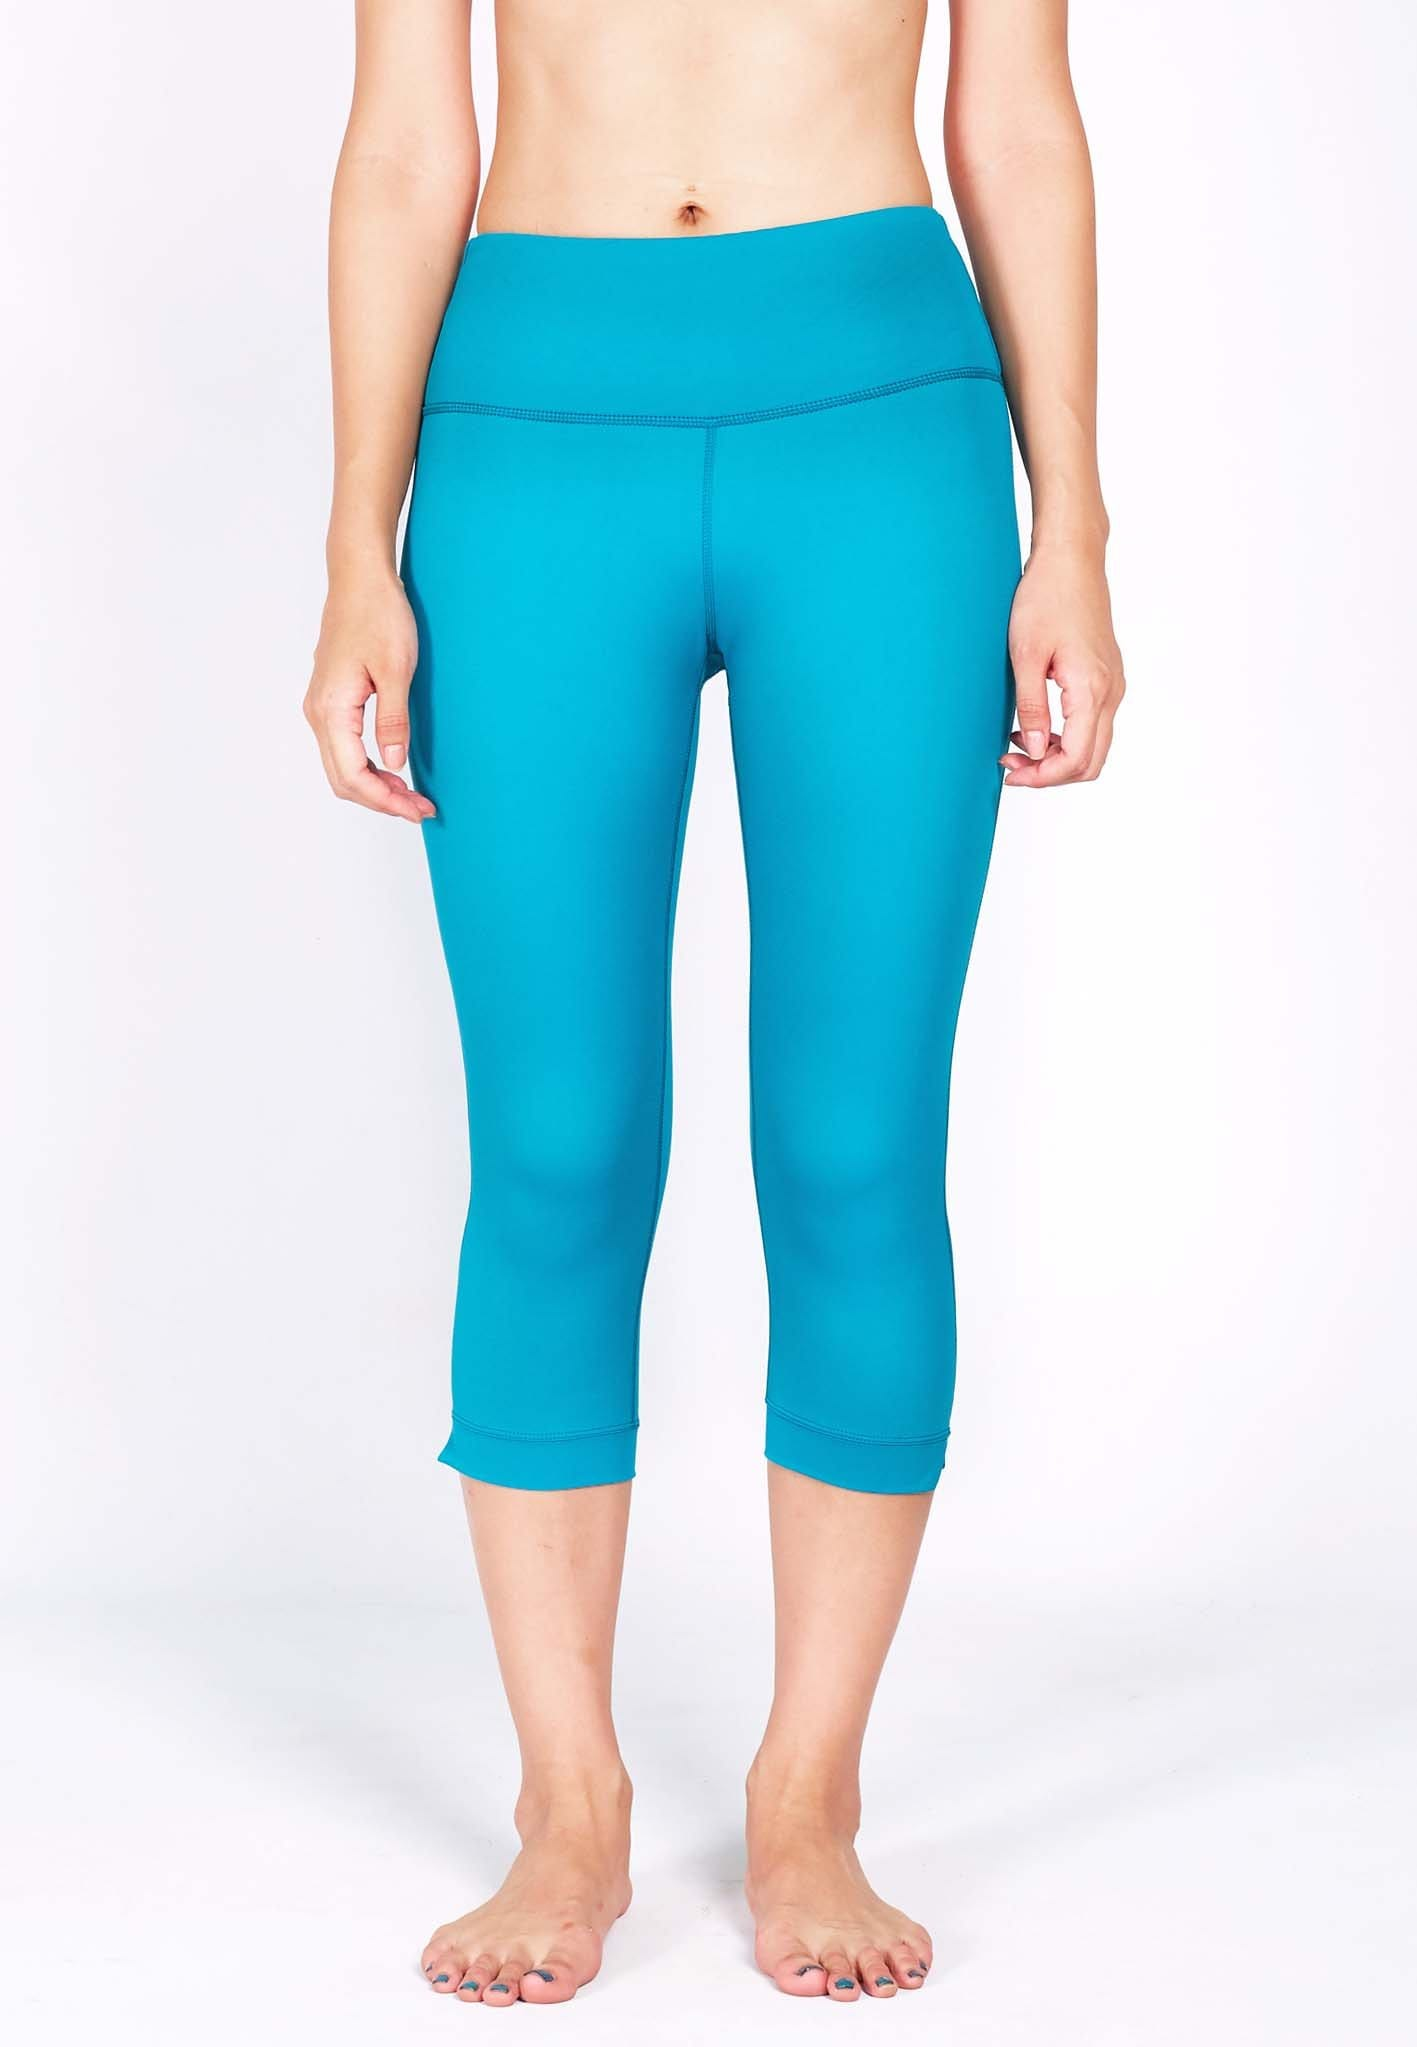 DEFINE 3/4 Capris (with Keeperband®) in Aqua